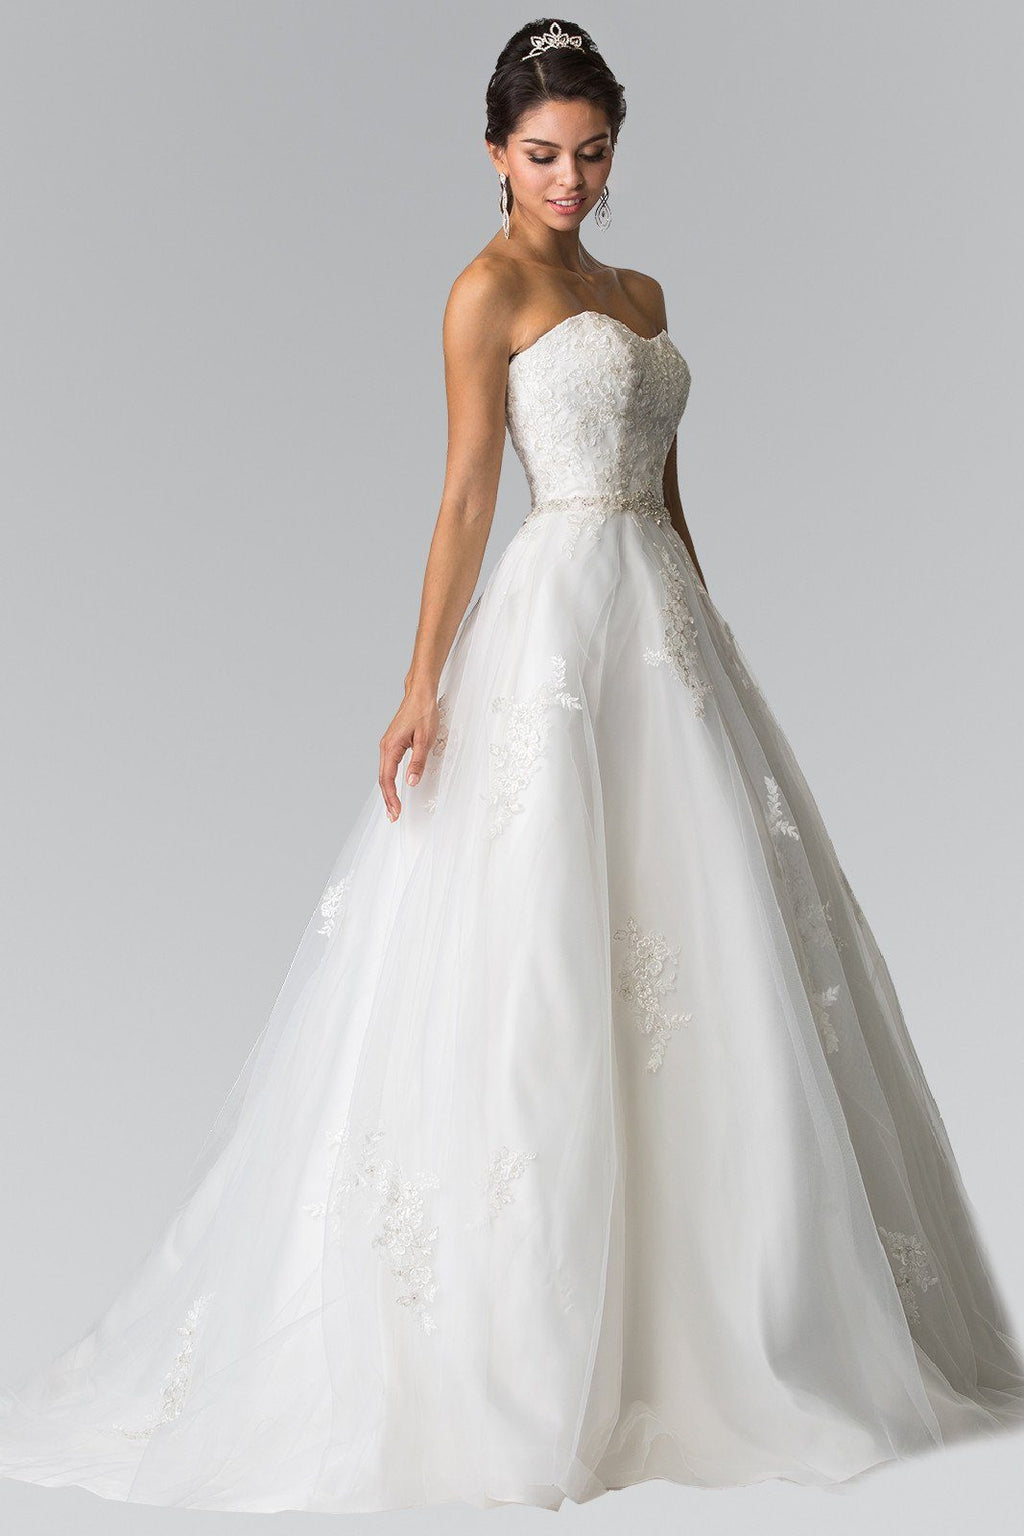 Sweetheart neckline lace bodice strapless a-line ball gown wedding dress gl2370 - Simply Fab Dress